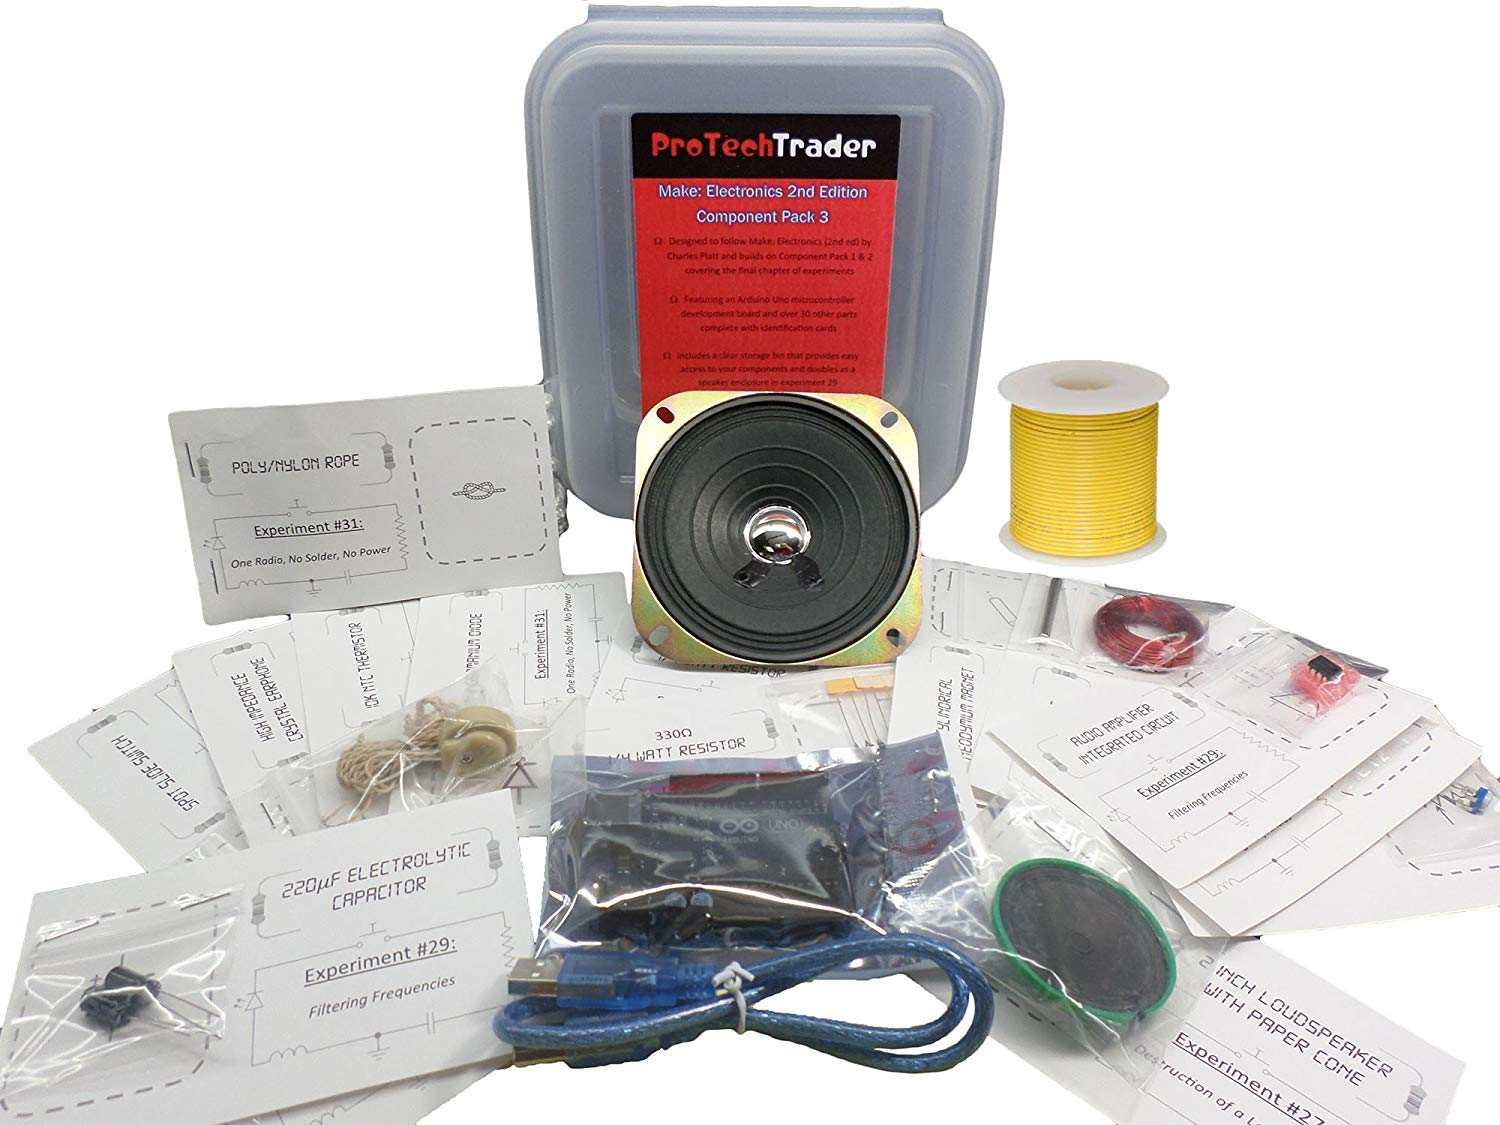 Ultimate Make: Electronics Kit Bundle - Includes All 3 Electronic Component Kits and Make: Electronics (2nd ED) Book by Charles Platt - STEM Electronics Science Education Set for Beginners Teen-Adult by ProTechTrader (Image #4)